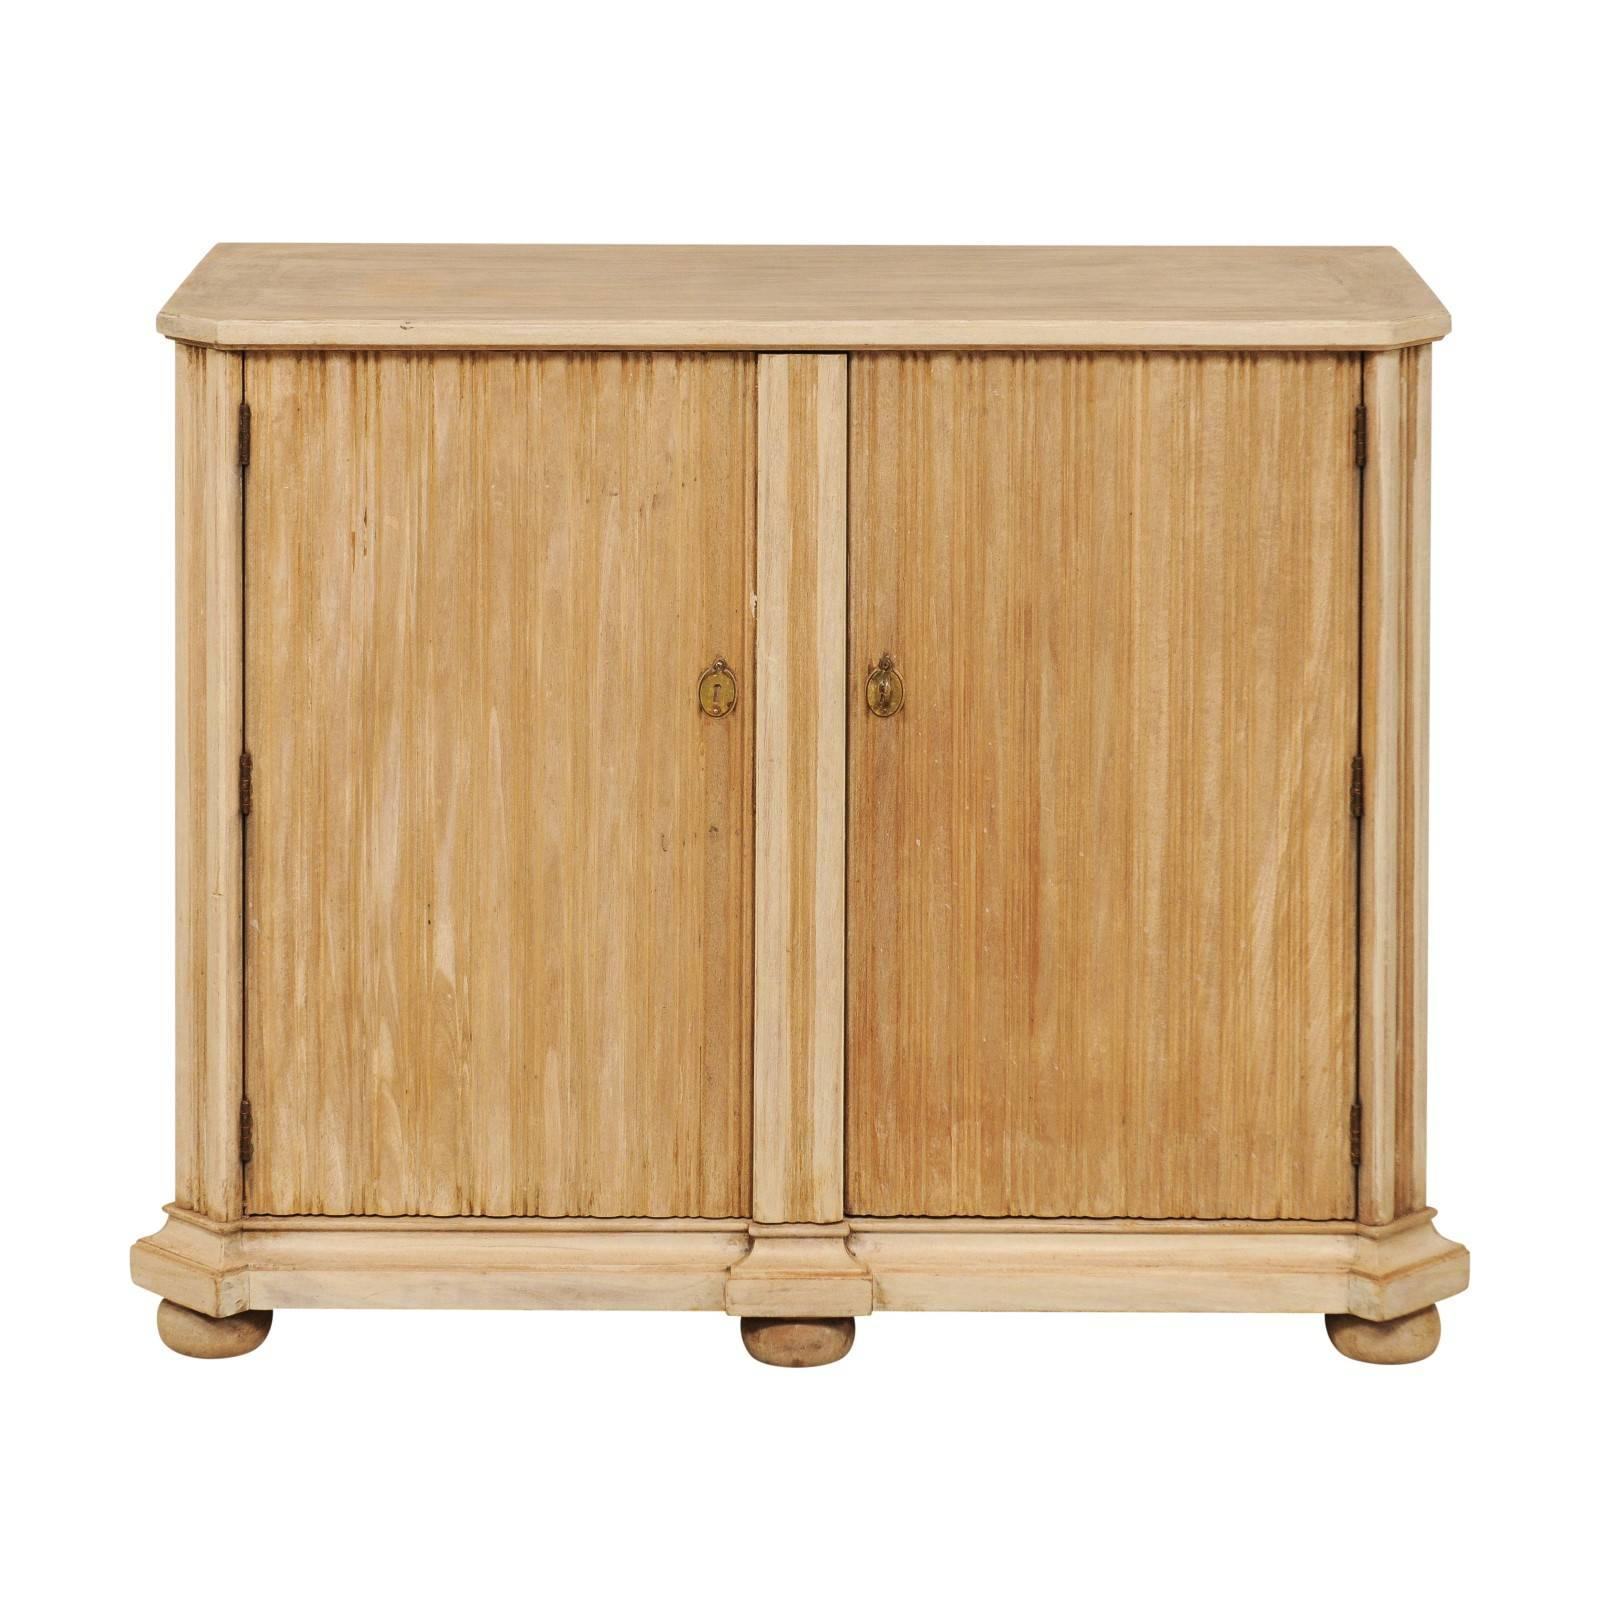 European Cute Sized Buffet In Nice Neutral Wood Finish Raised On Bun Feet